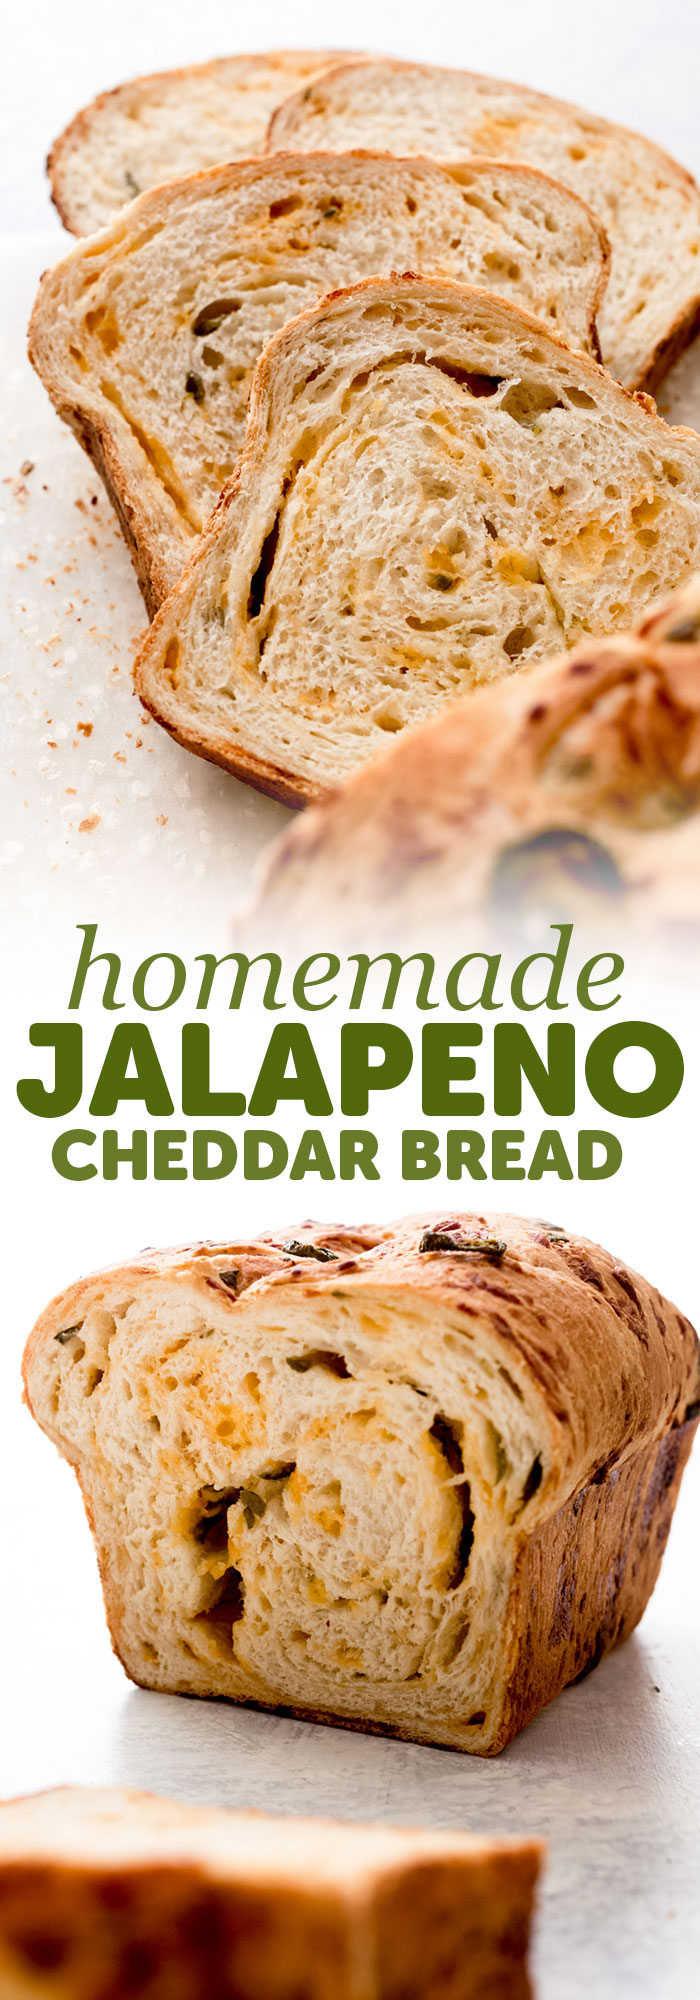 Homemade Jalapeño Cheddar Bread - learn how to turn everyday sandwich bread into something amazing! Use this to make grilled cheese sandwiches, serve with chili, or tomato soup, or make gourmet sandwiches! #cheddarcheesebread #cheesebread #jalapenocheddarbread #sandwichbread #breadrecipe | Littlespicejar.com